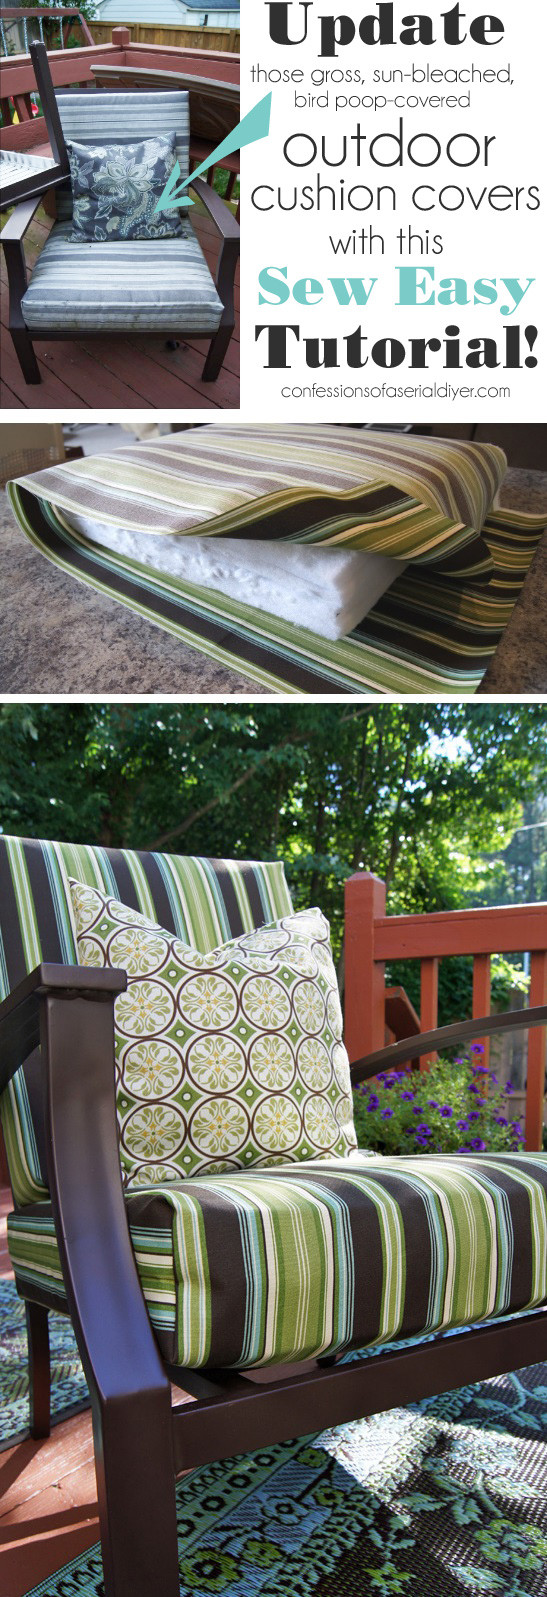 Best ideas about Patio Furniture Cushion Covers . Save or Pin Sew Easy Outdoor Cushion Covers Ol but Goo Now.